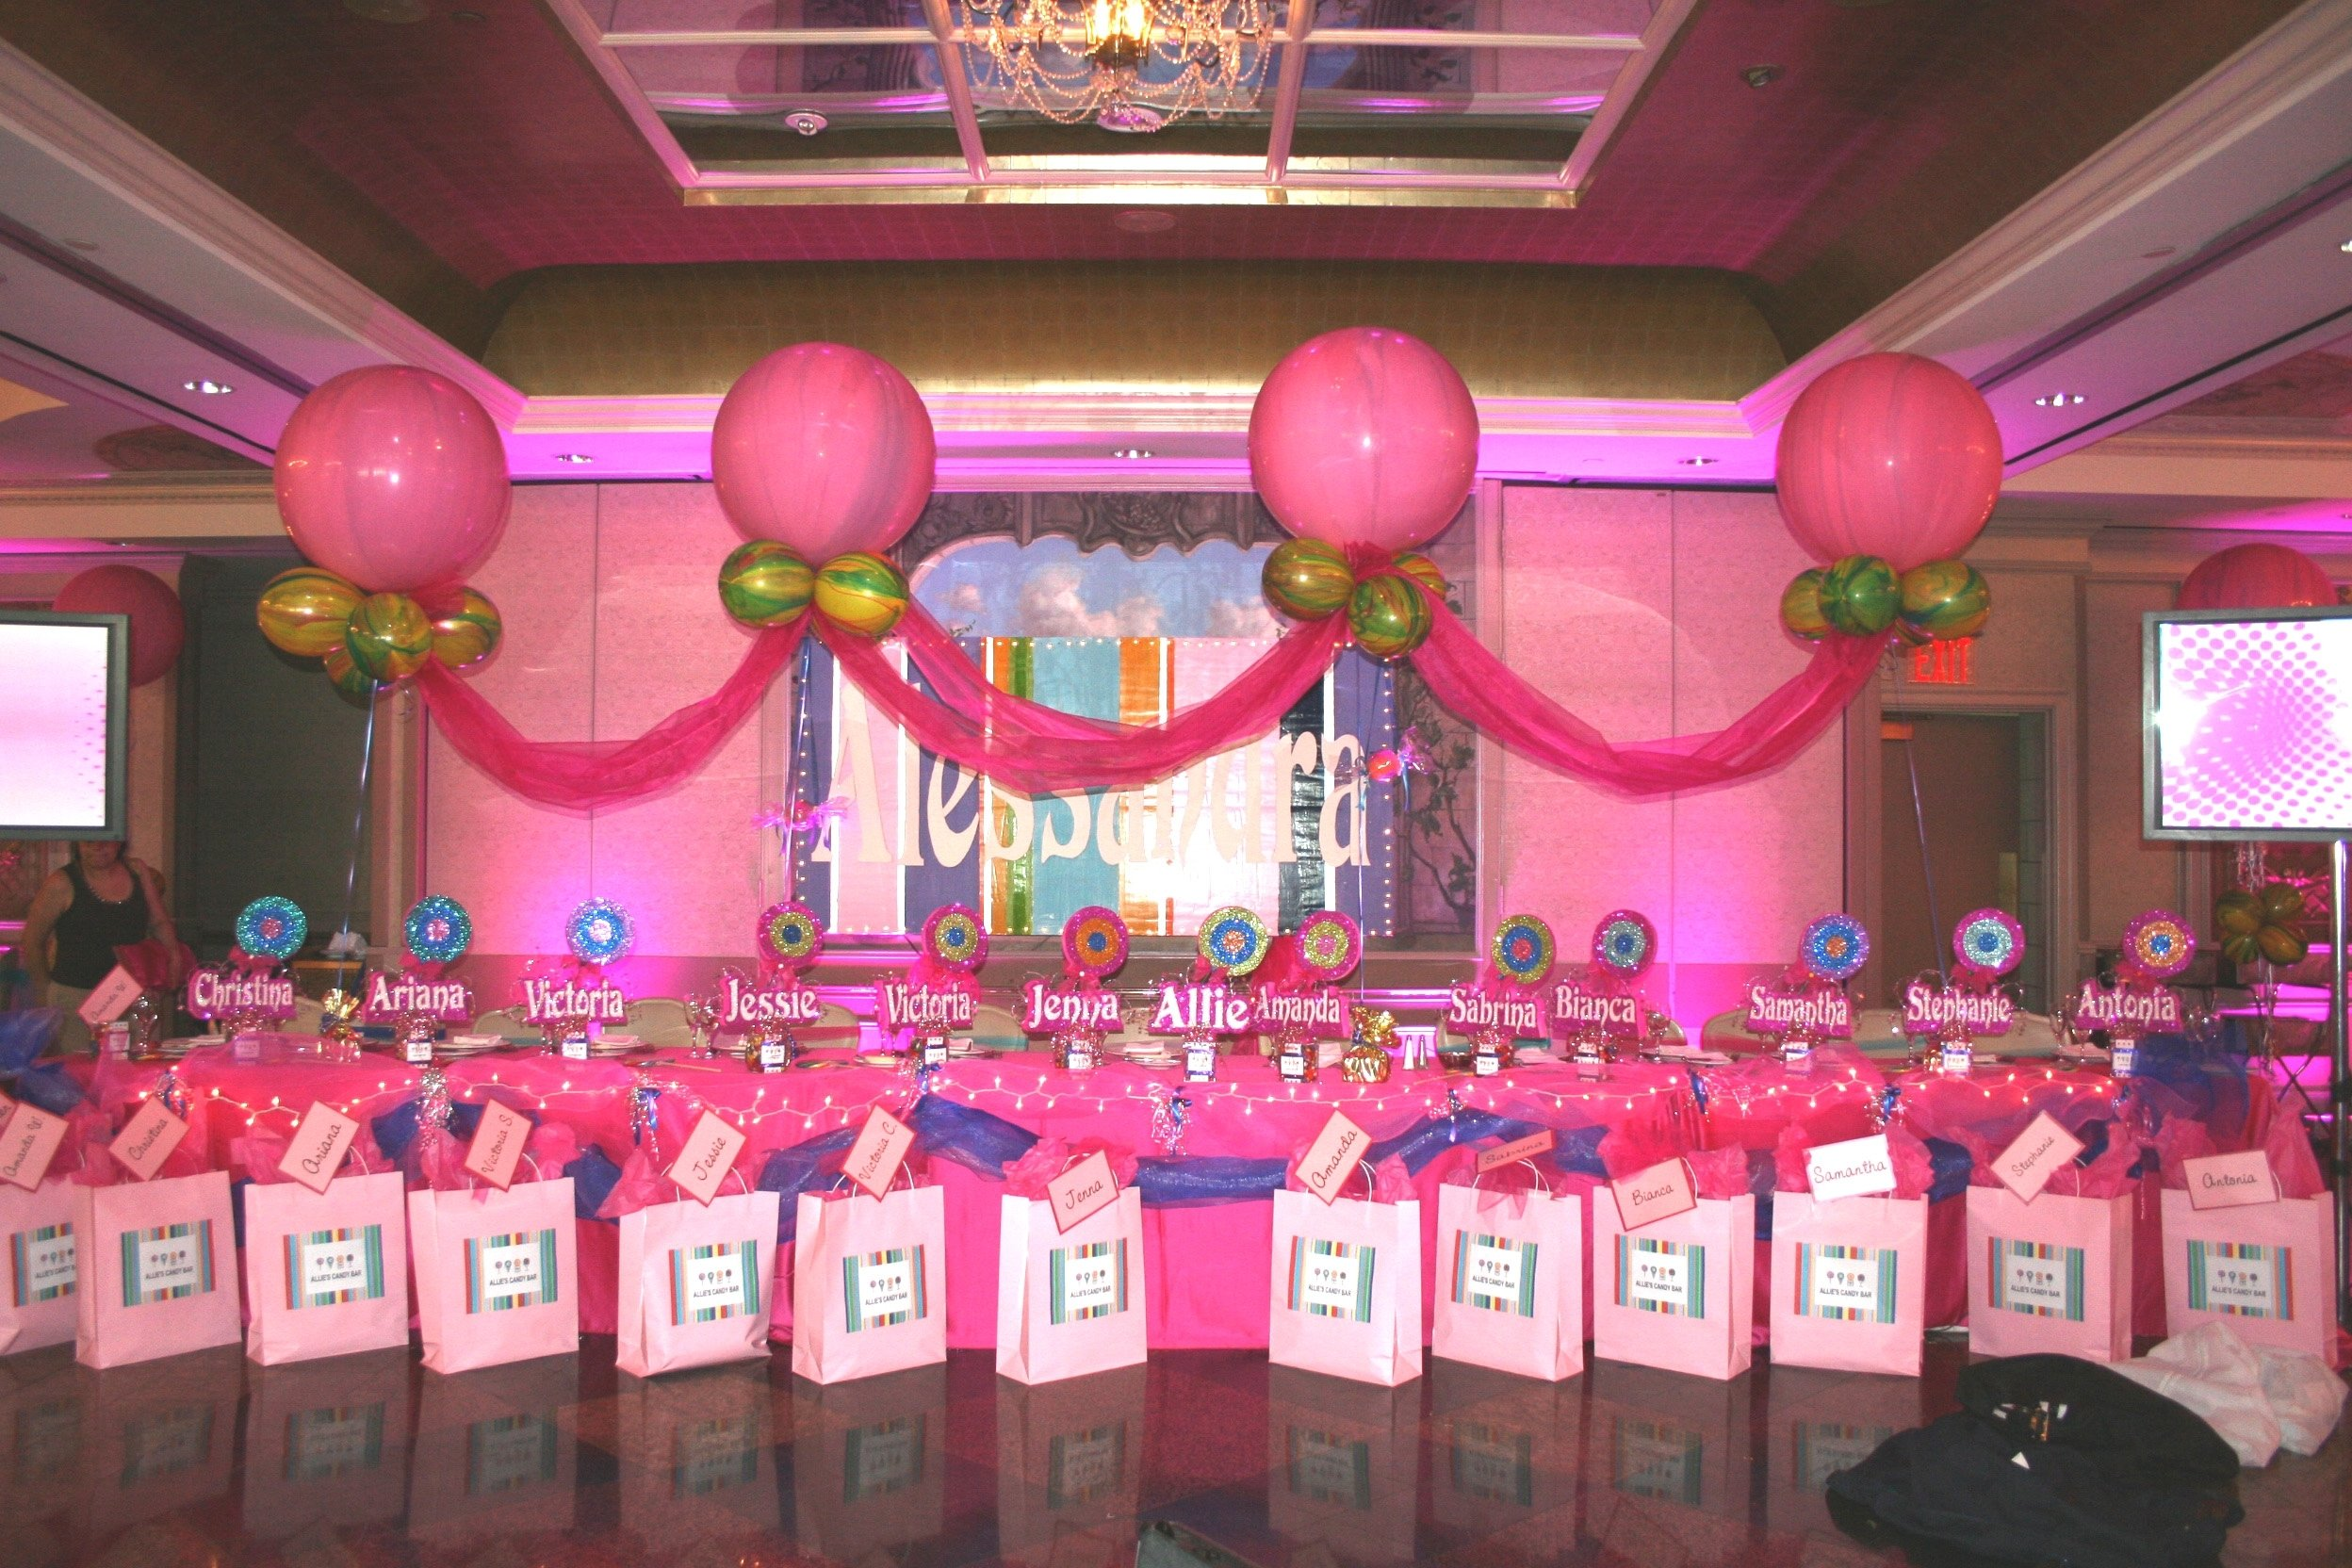 10 Awesome Ideas For A 16Th Birthday Party images about my sweet sixteen ideas on pinterest and 16th birthday 2020